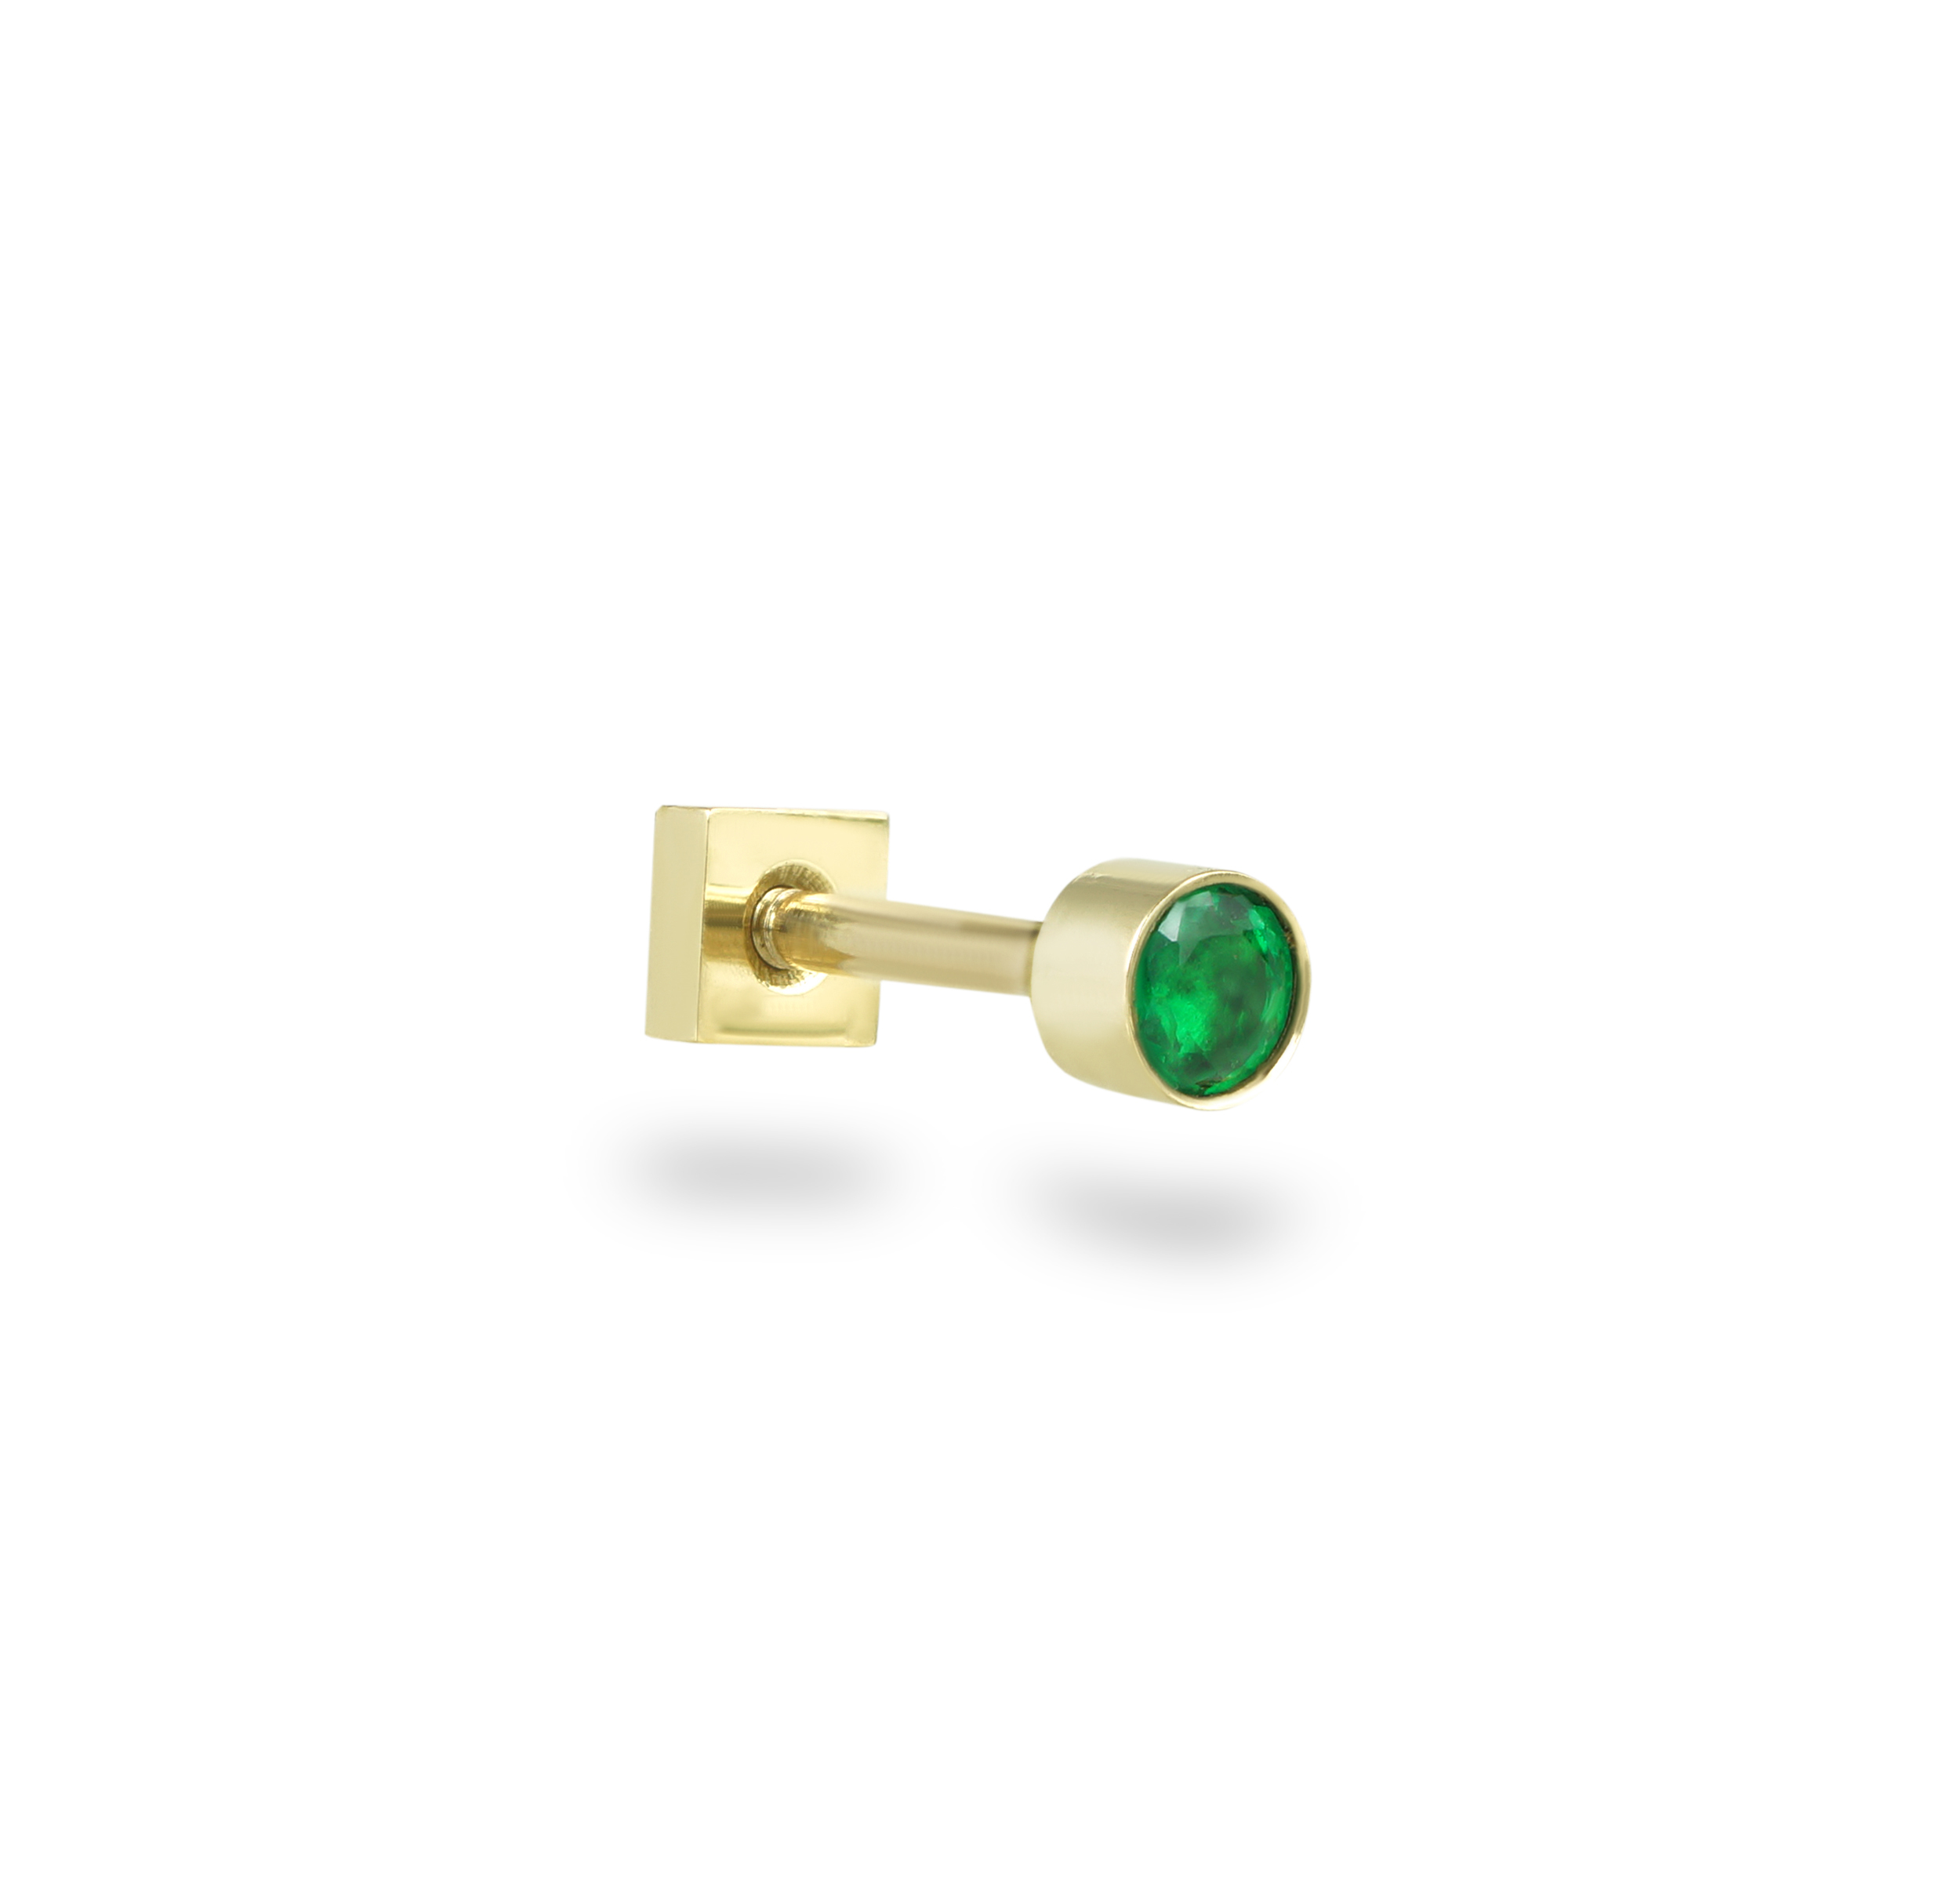 Yellow Gold Single Emerald Cartilage Tragus Helix Conch Lobe Piercing Earring Stud